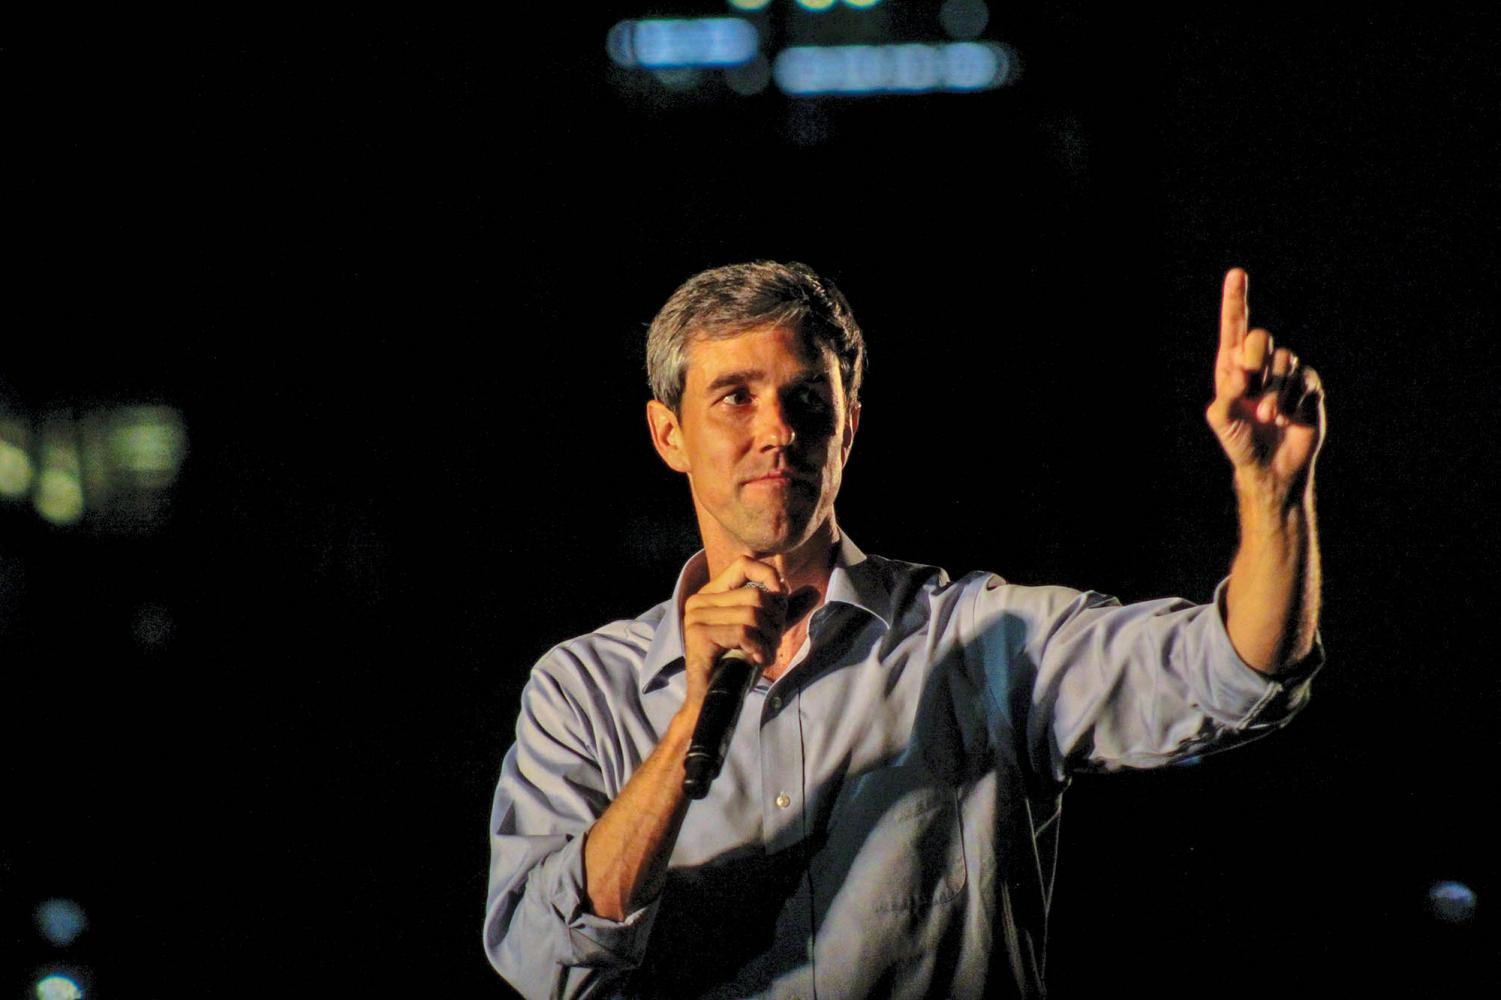 Cruz won the election with 50.9 percent of votes while O'Rourke finished with 48.3 percent.